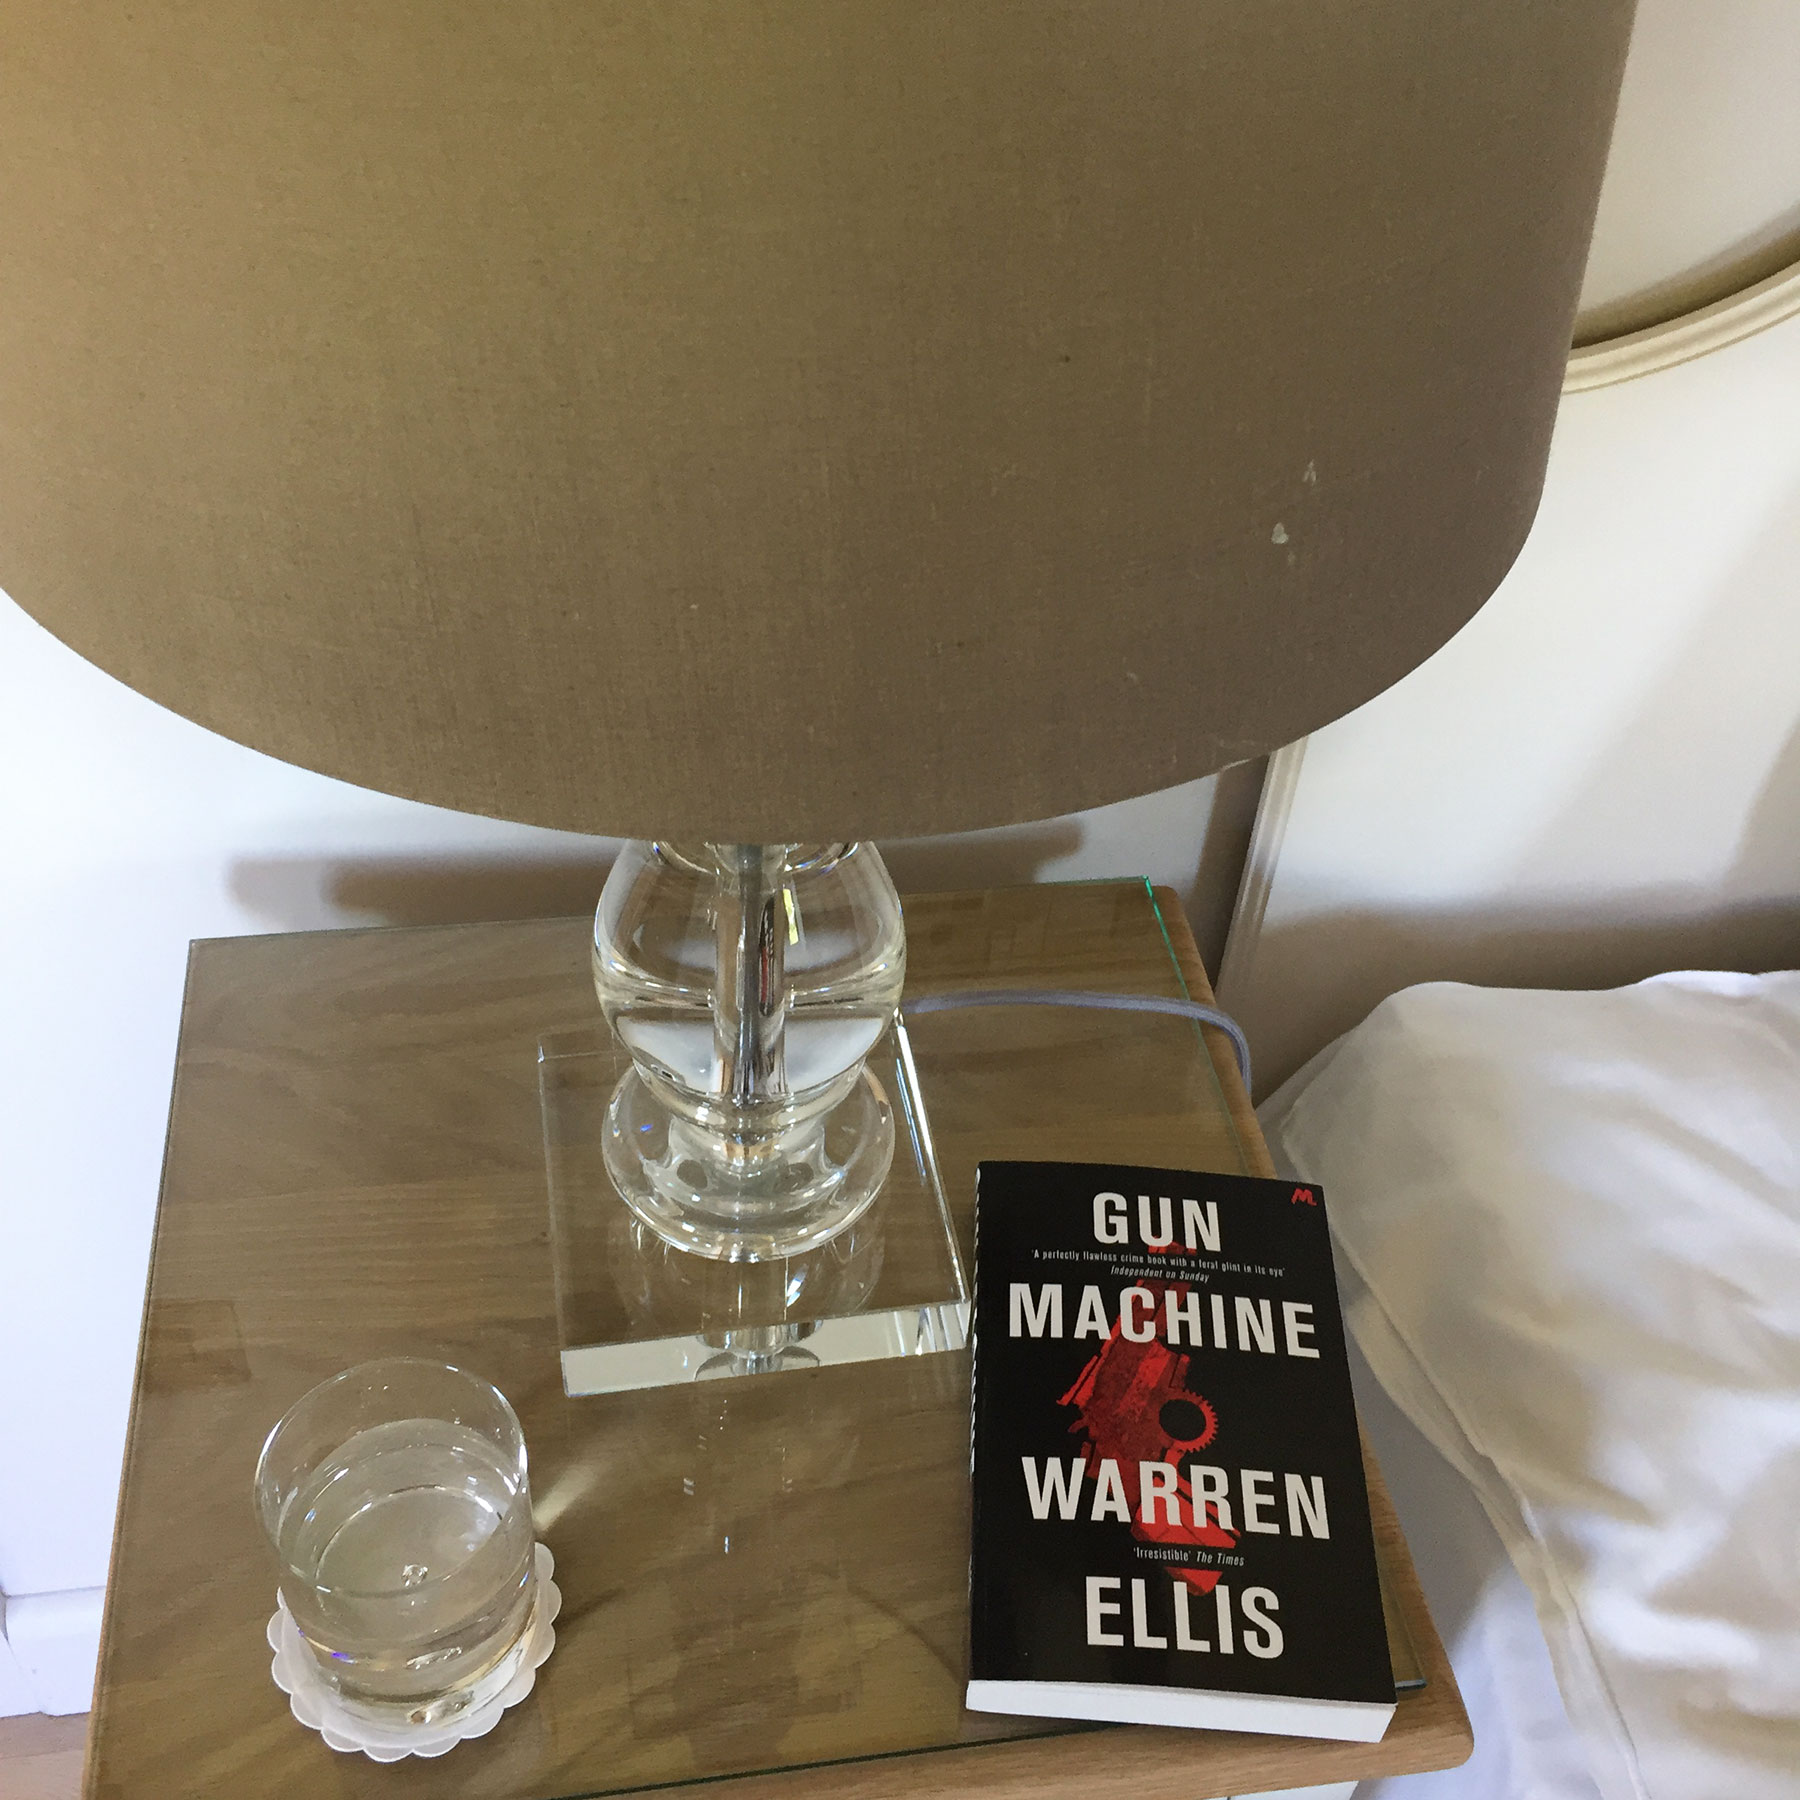 gun machine, warren ellis, suggestions of what books to read; review by aunoralurra, 建議; 제안; 提案اقتراحات; forslag; suggesties; ehdotuksia; Vorschläge; προτάσεις; manaʻo kōkua; הצעות; सुझाव; javaslatok; tillögur; saran; moltaí; suggerimenti; Suggestioune; پیشنهادات; sugestie; sugestões; ਸੁਝਾਅ; sugestii; предложения; molaidhean; sugerencias; förslag; öneri; books